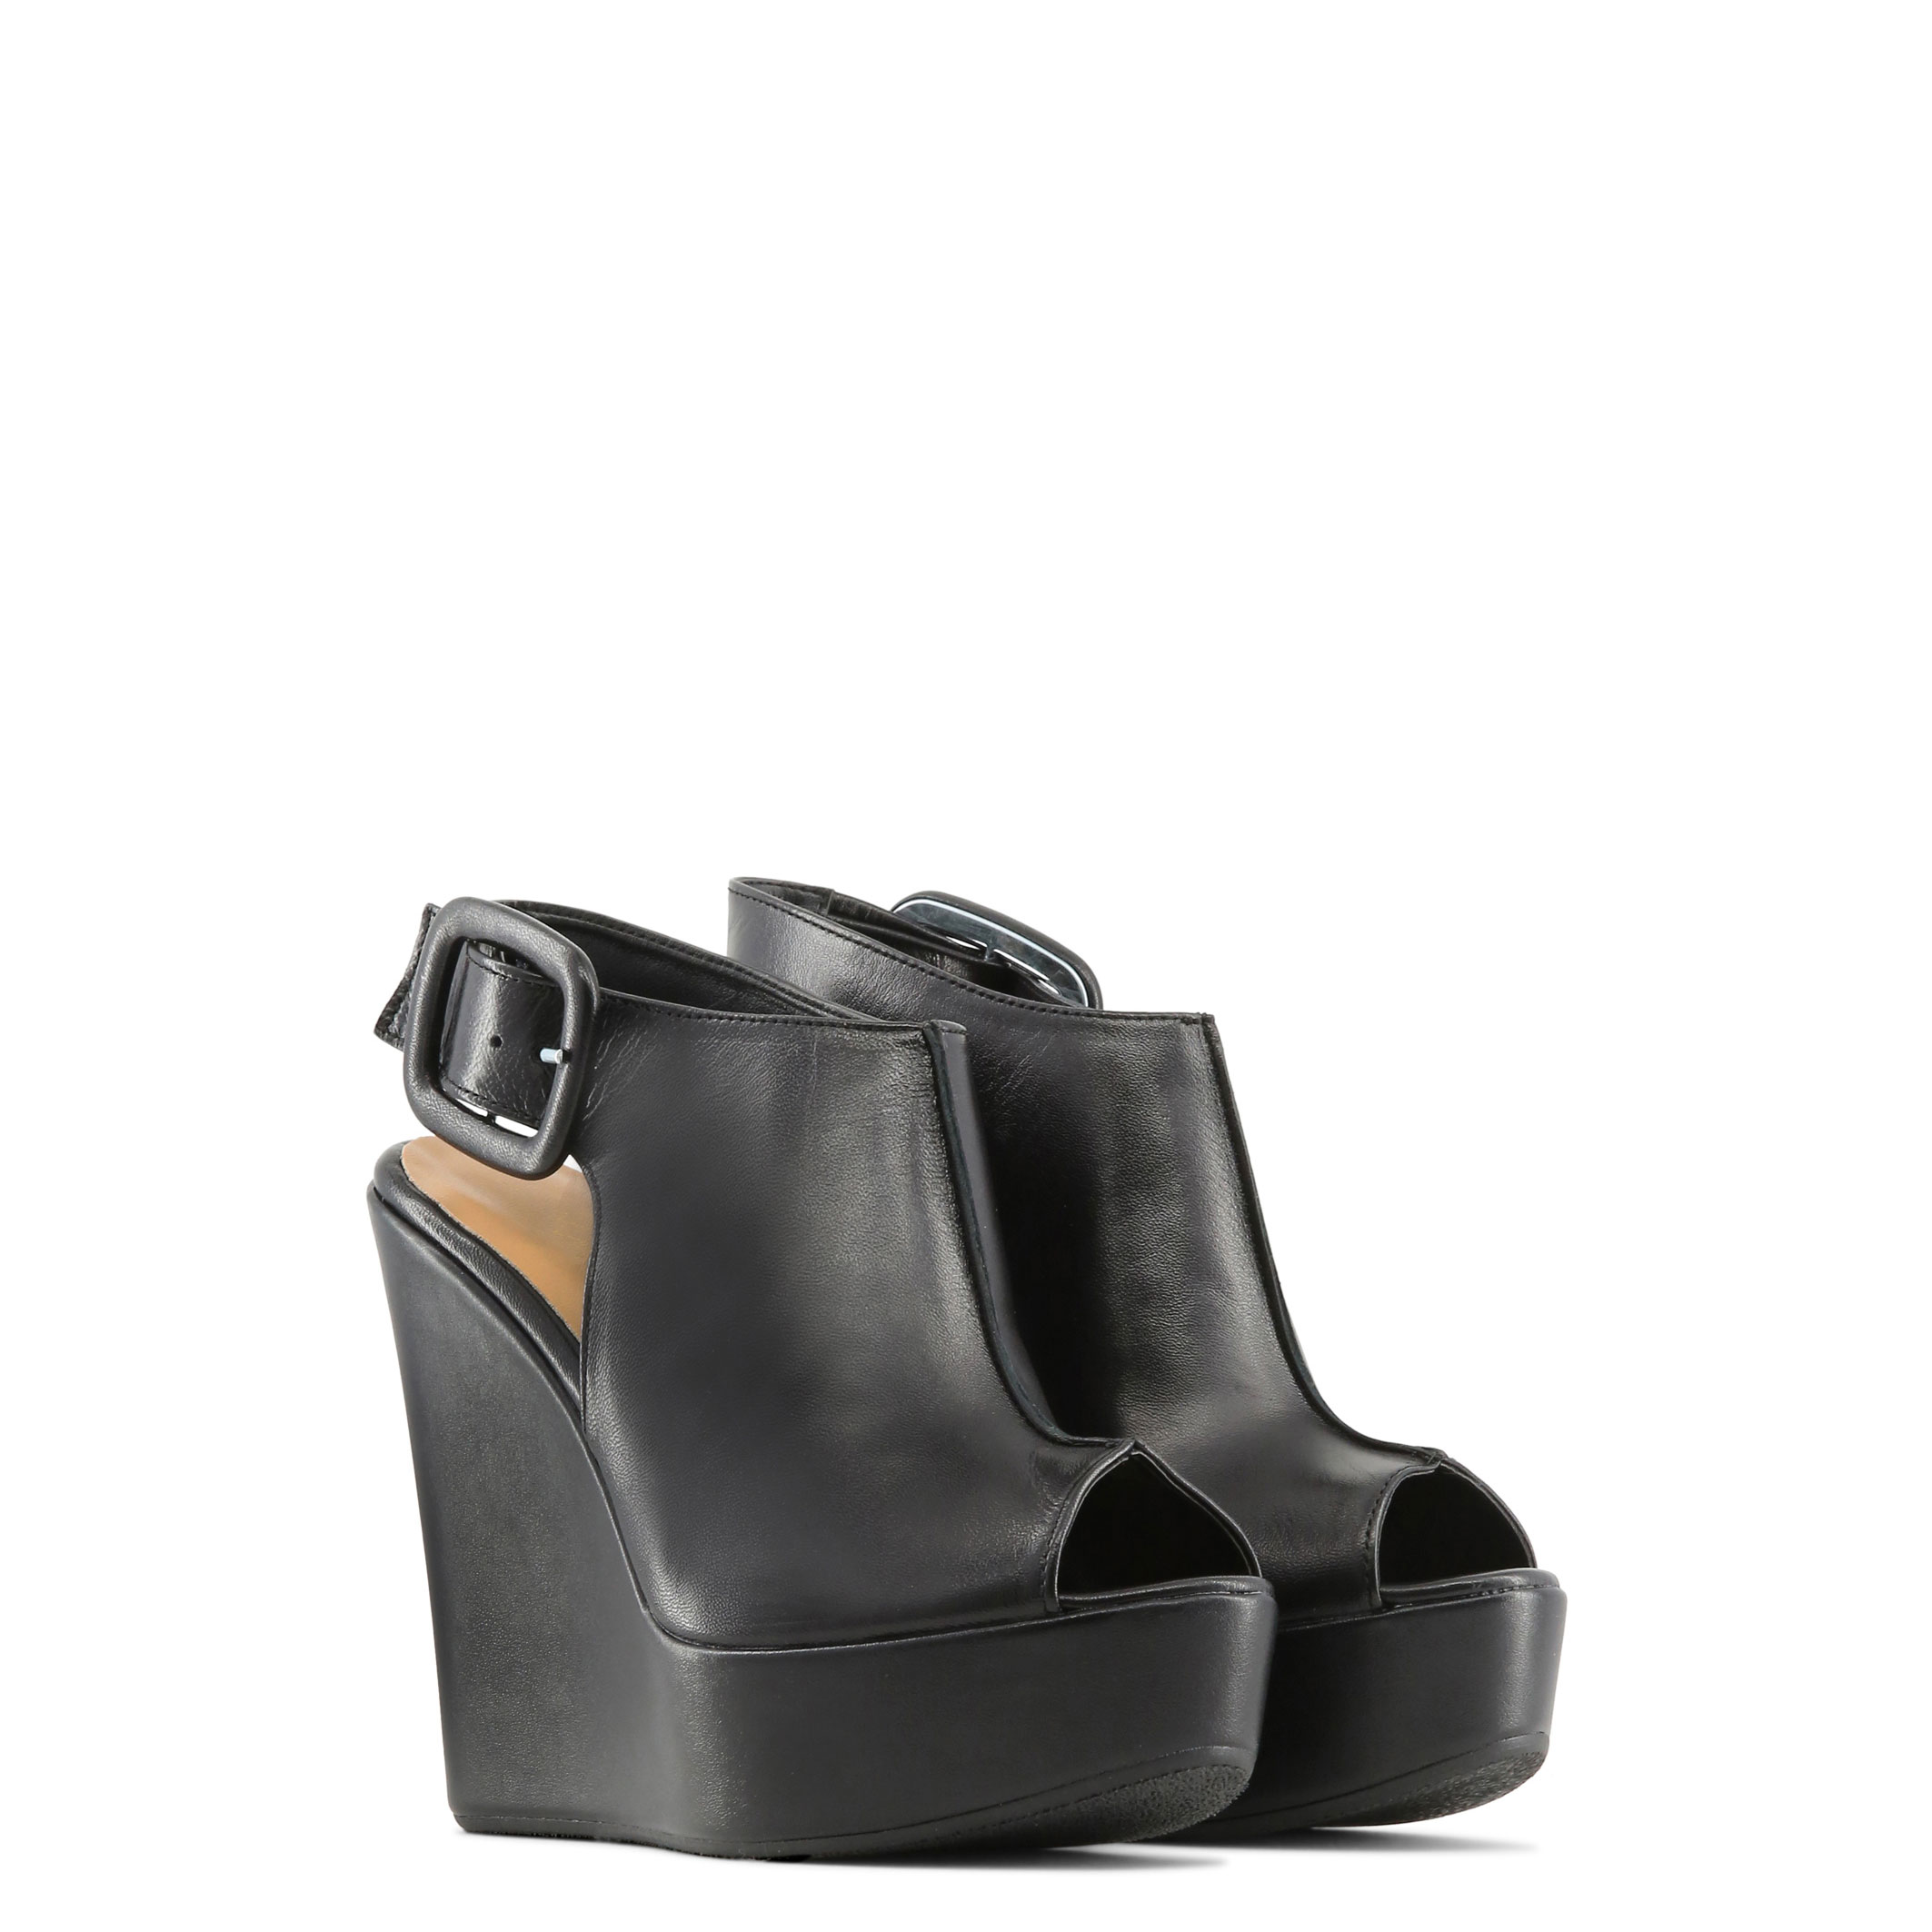 ... Shoes Women Wedges Black 78474 BDT Outlet 40. About this product.  Picture 1 of 2  Picture 2 of 2 49ae47dc2413